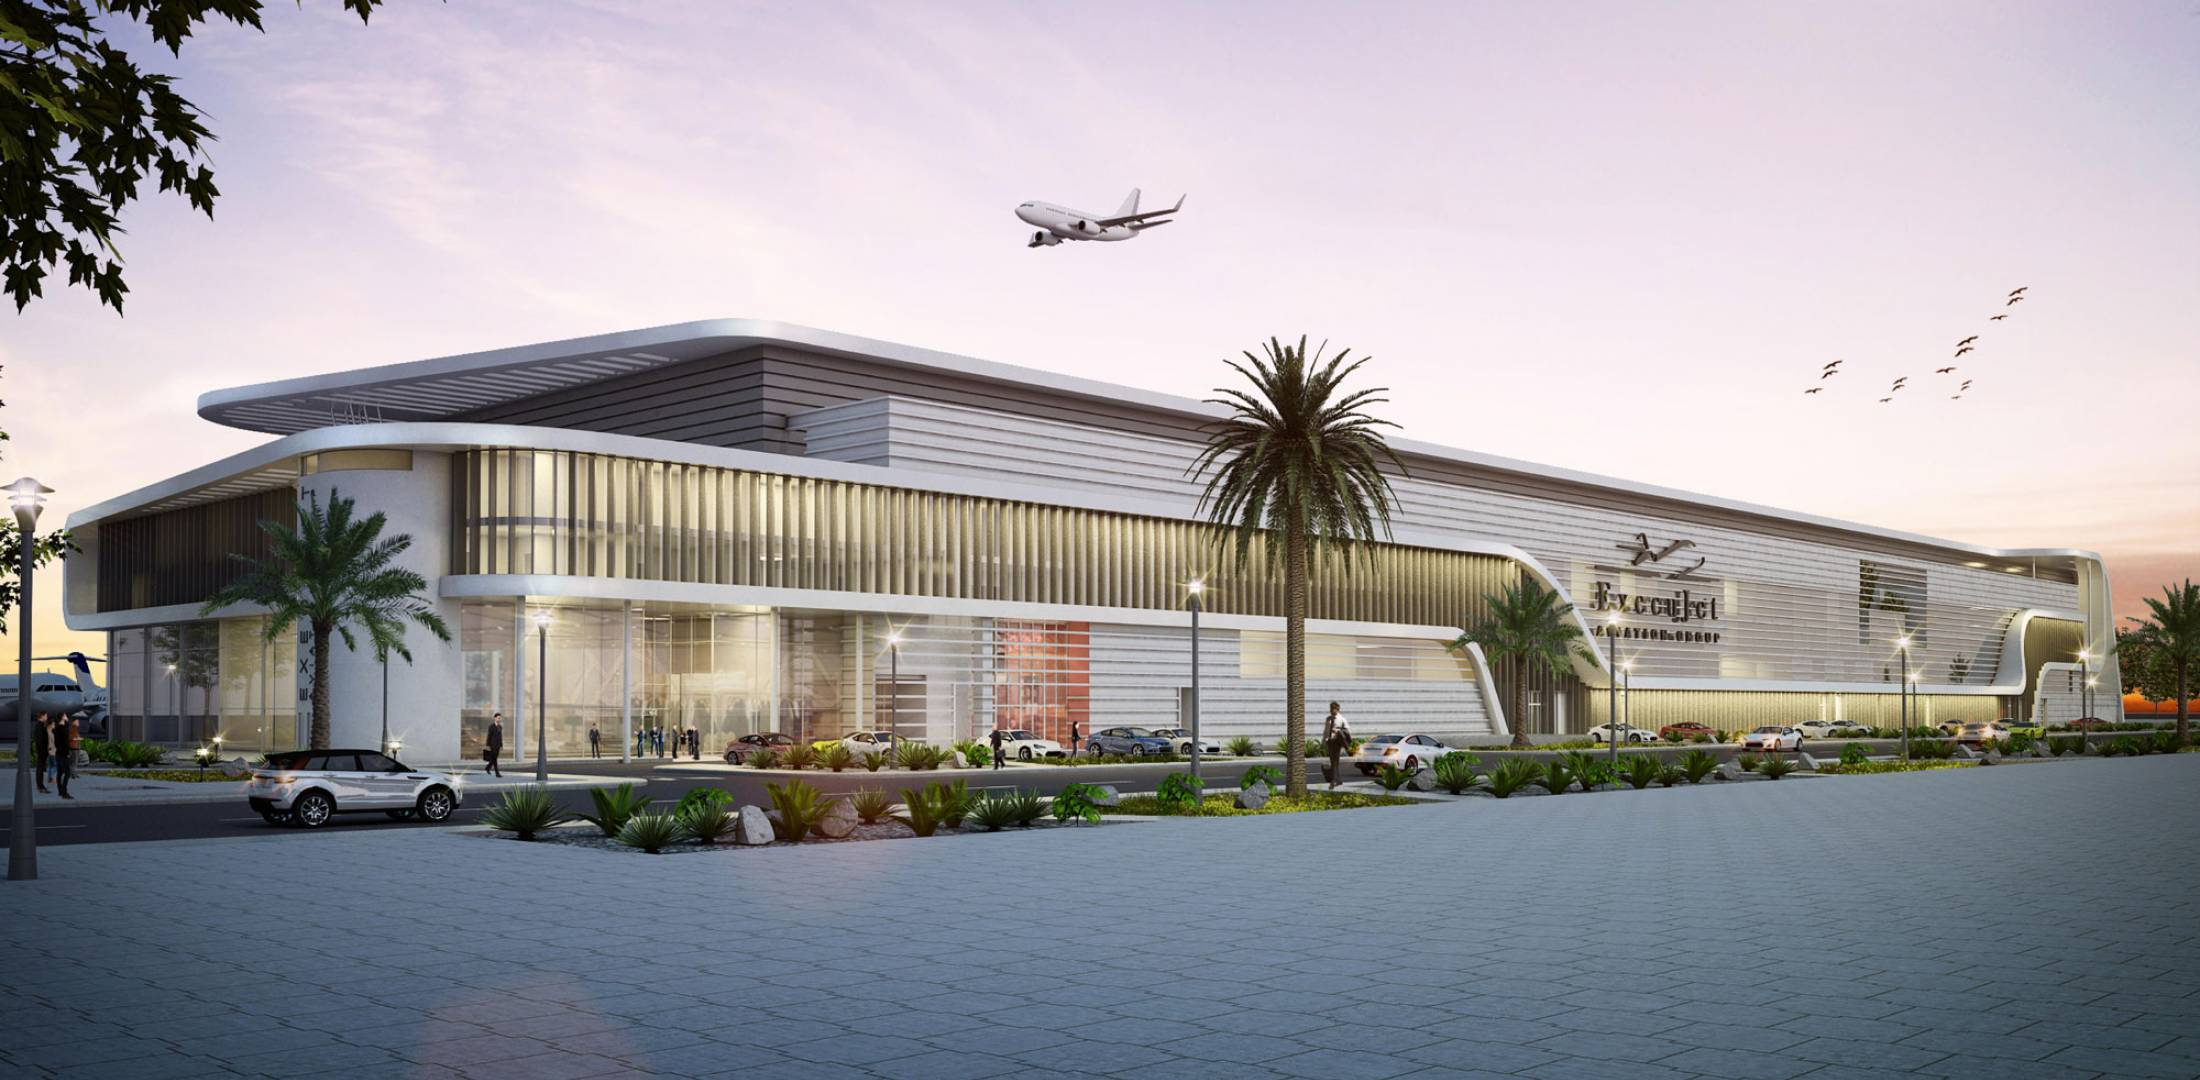 ExecuJet's planned consolidated FBO/MRO at DWC